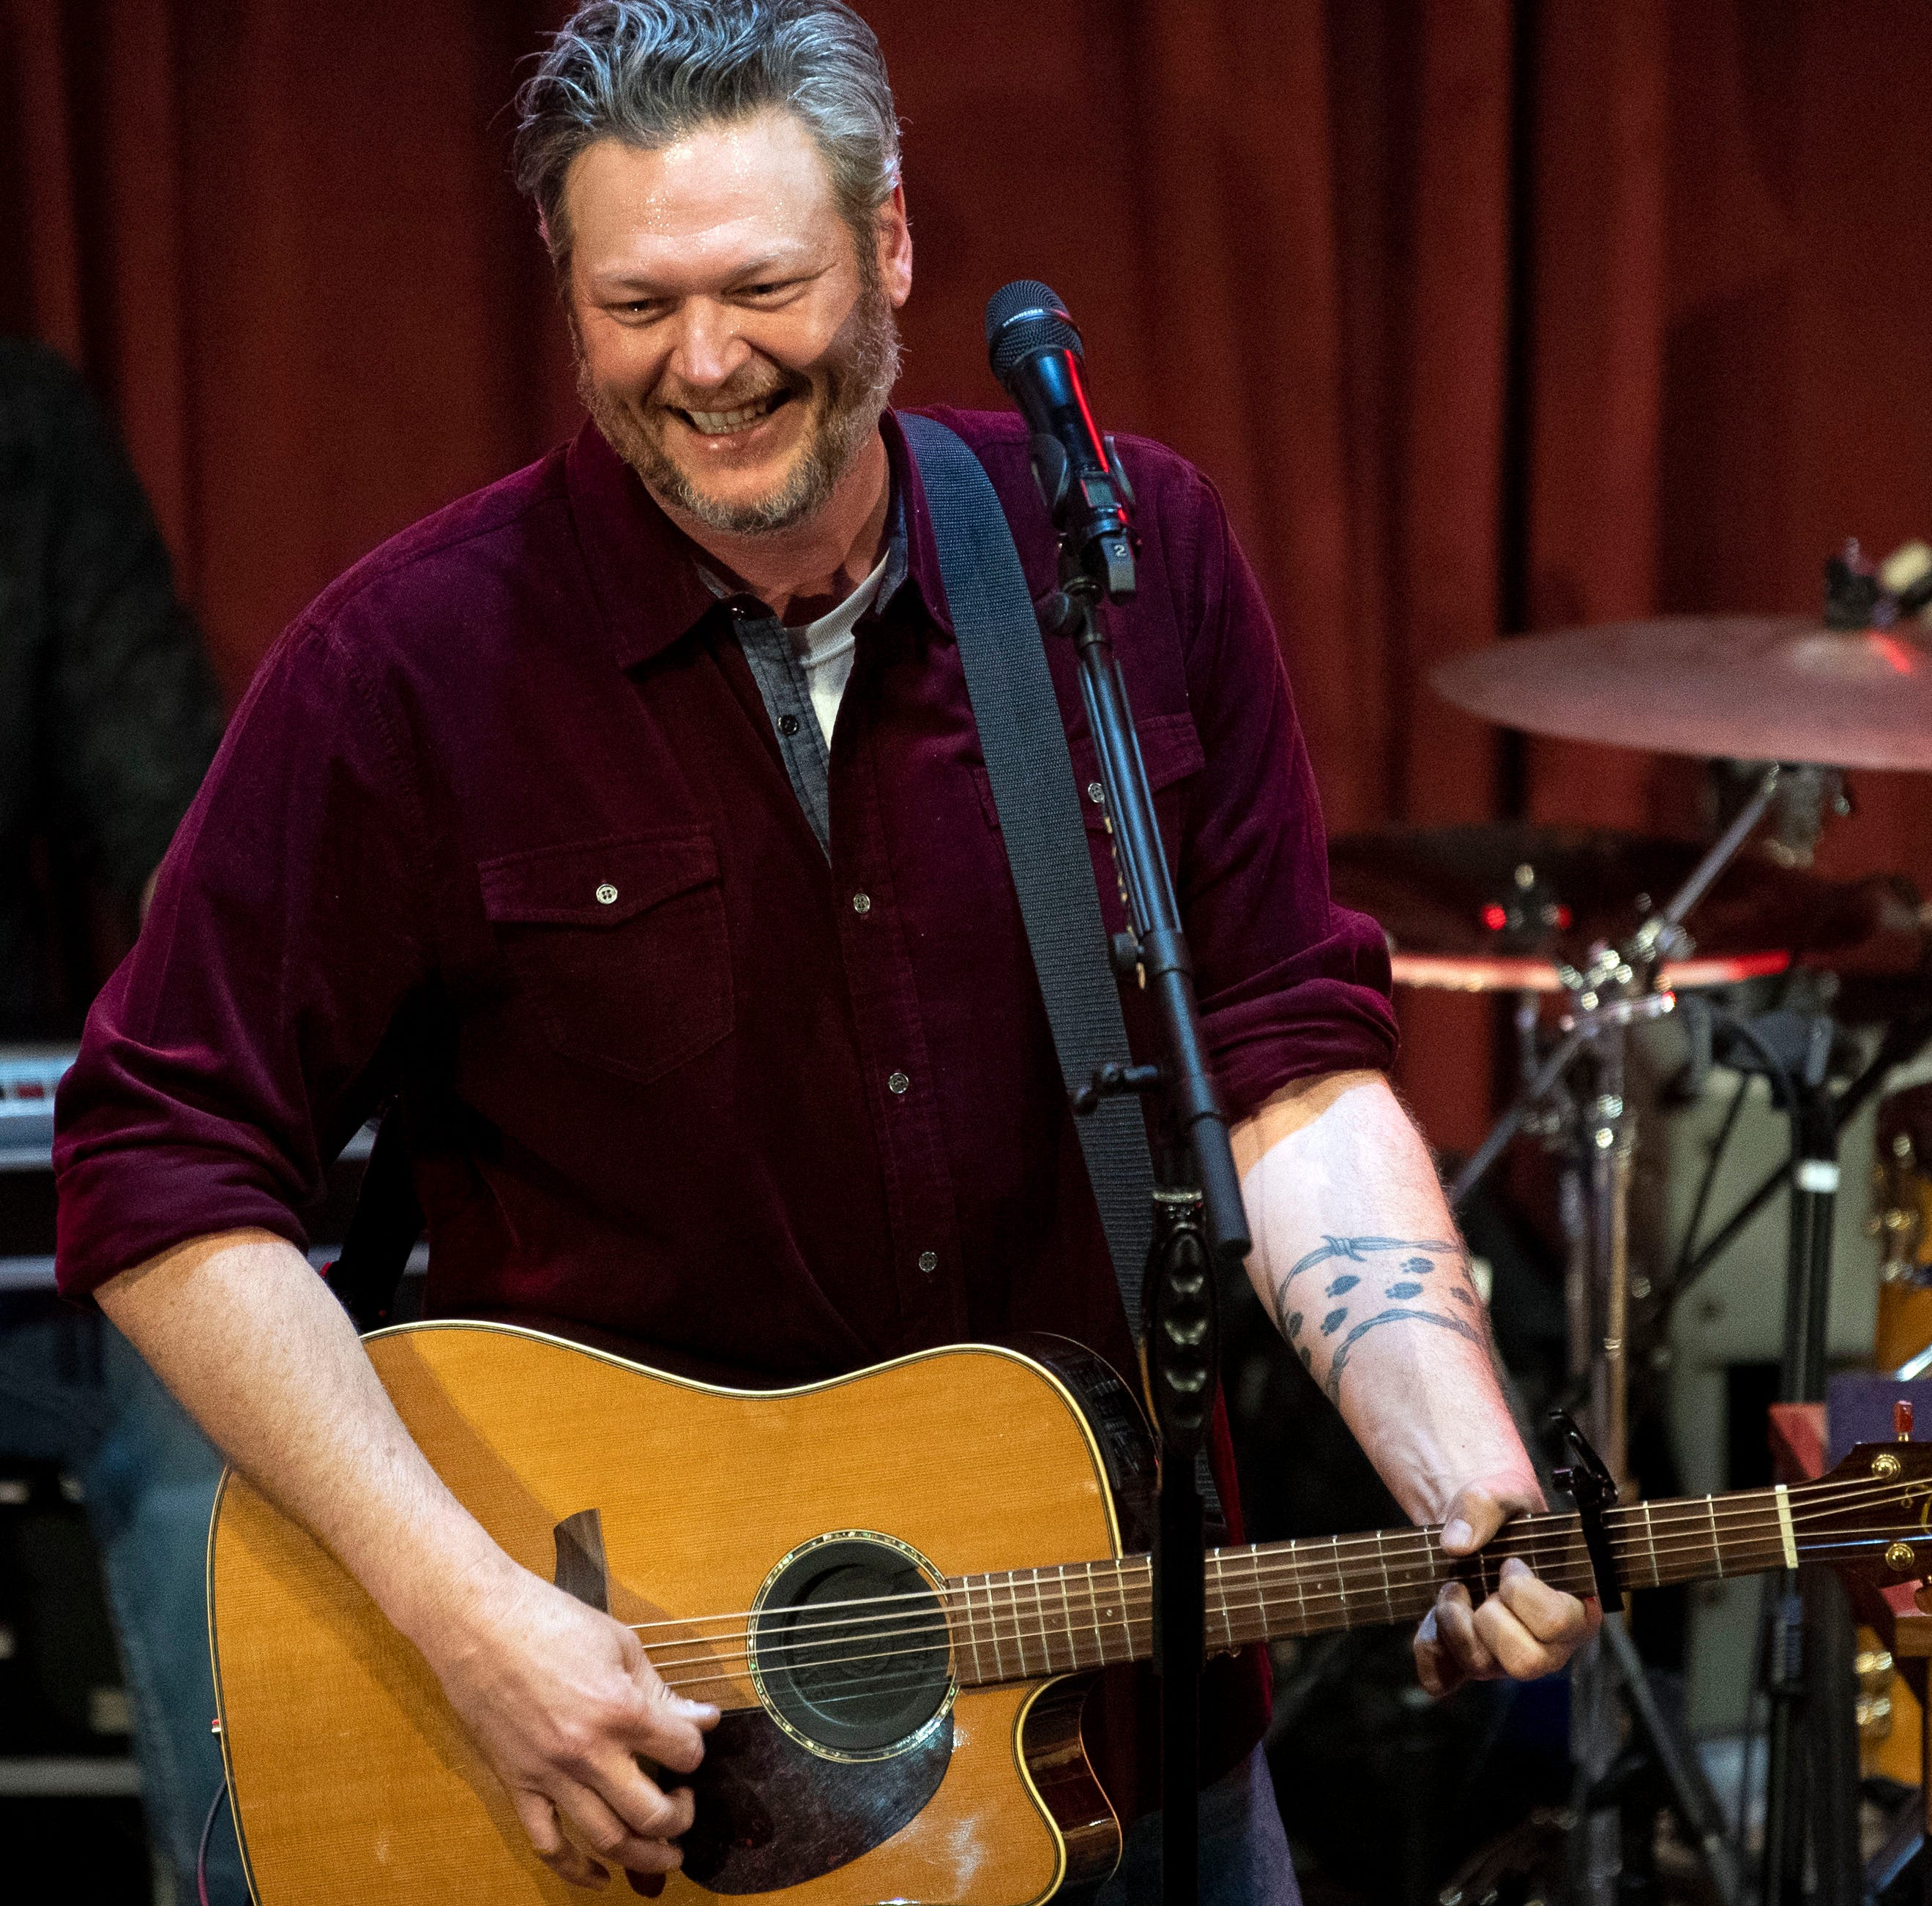 Blake Shelton shows his love for East Tennessee with 2-hour Ole Red Gatlinburg concert